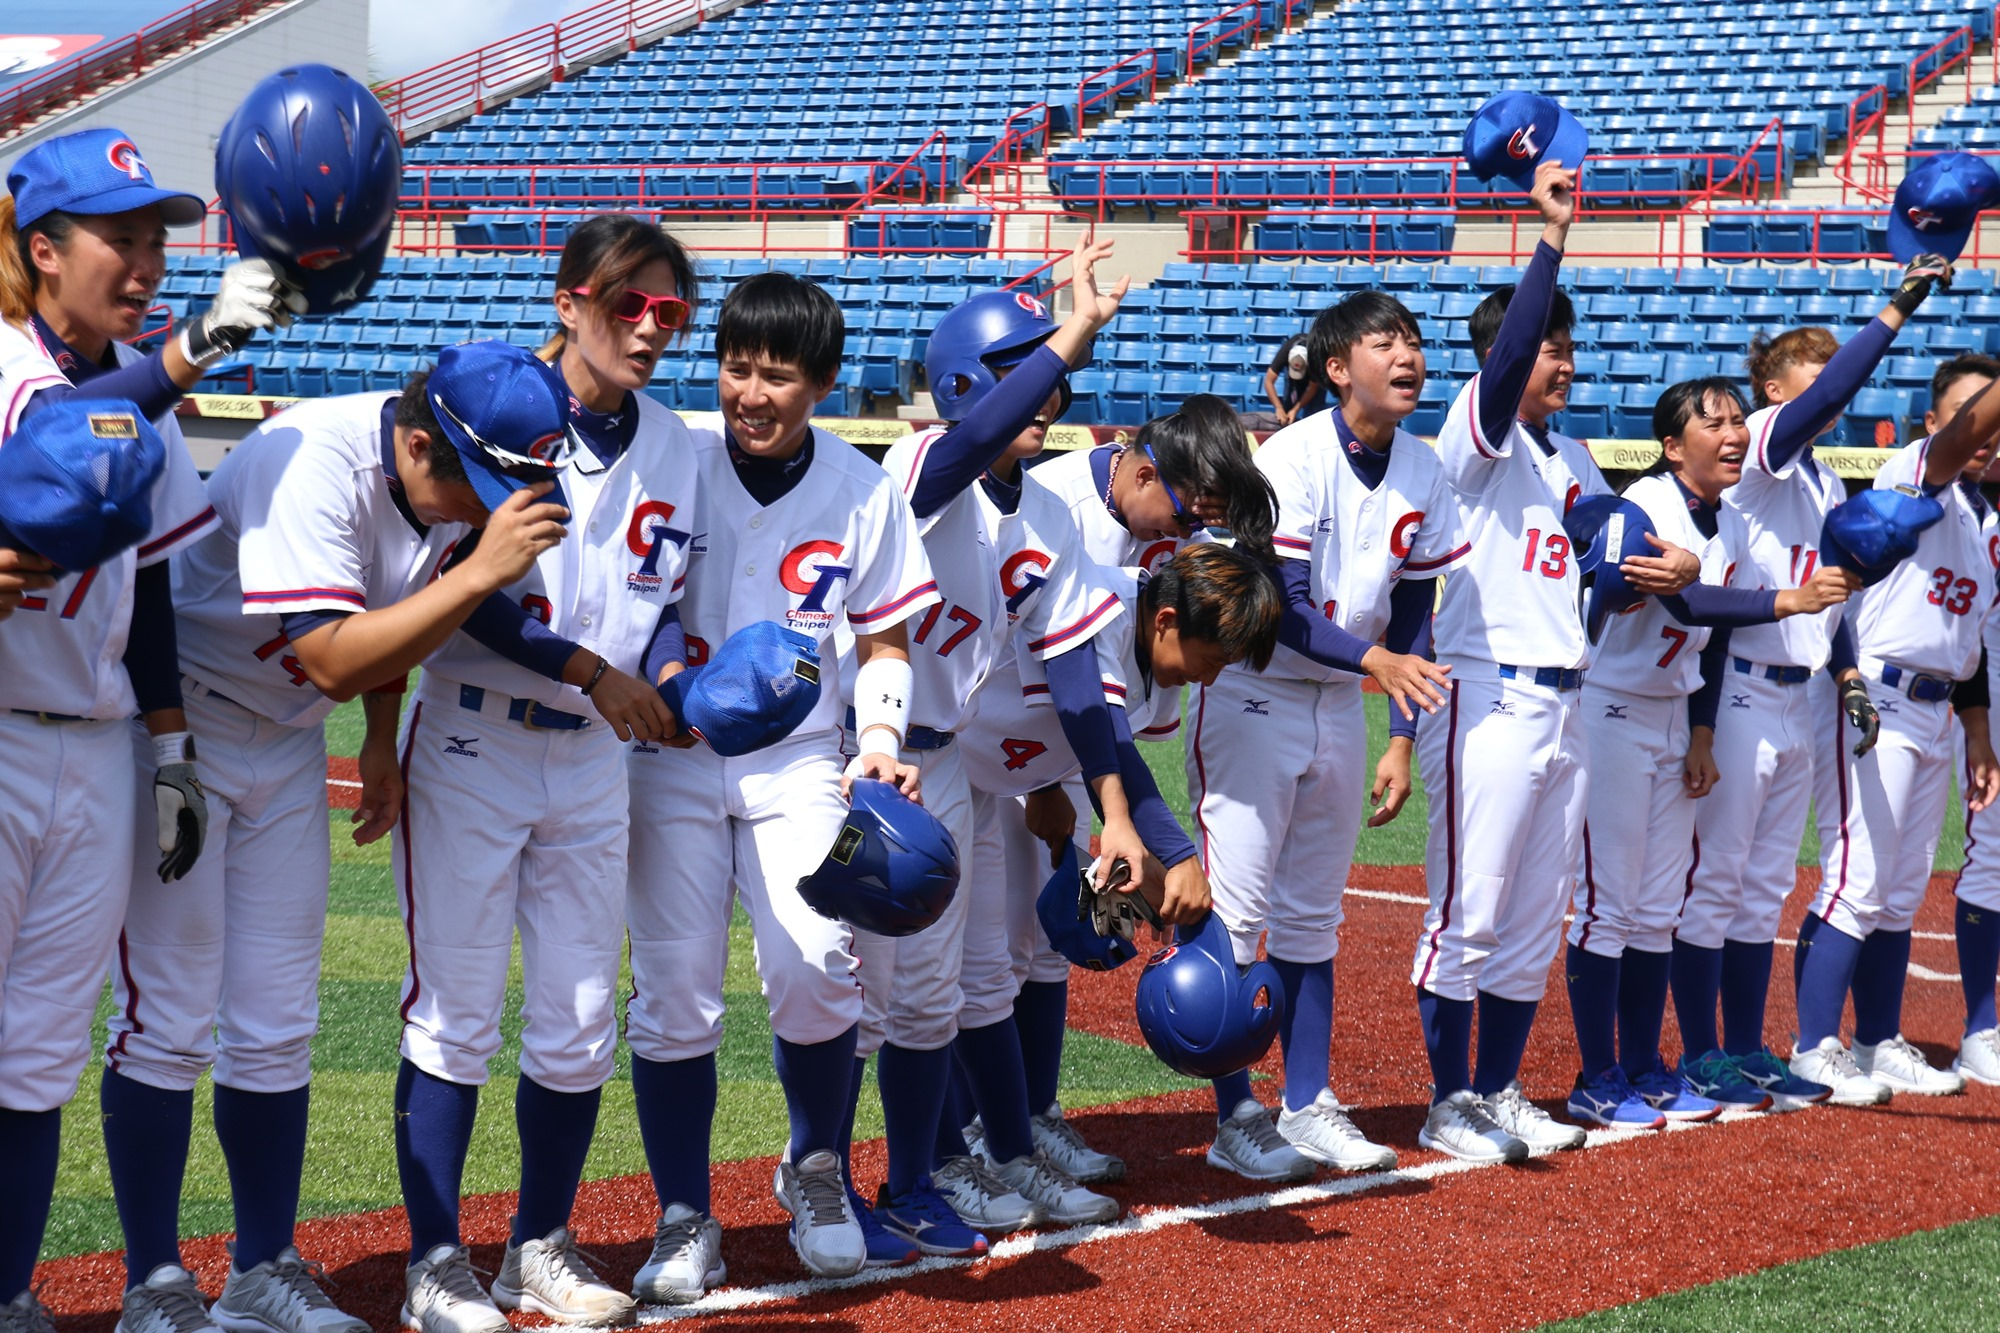 Chinese Taipei is now 3-0 in the super round